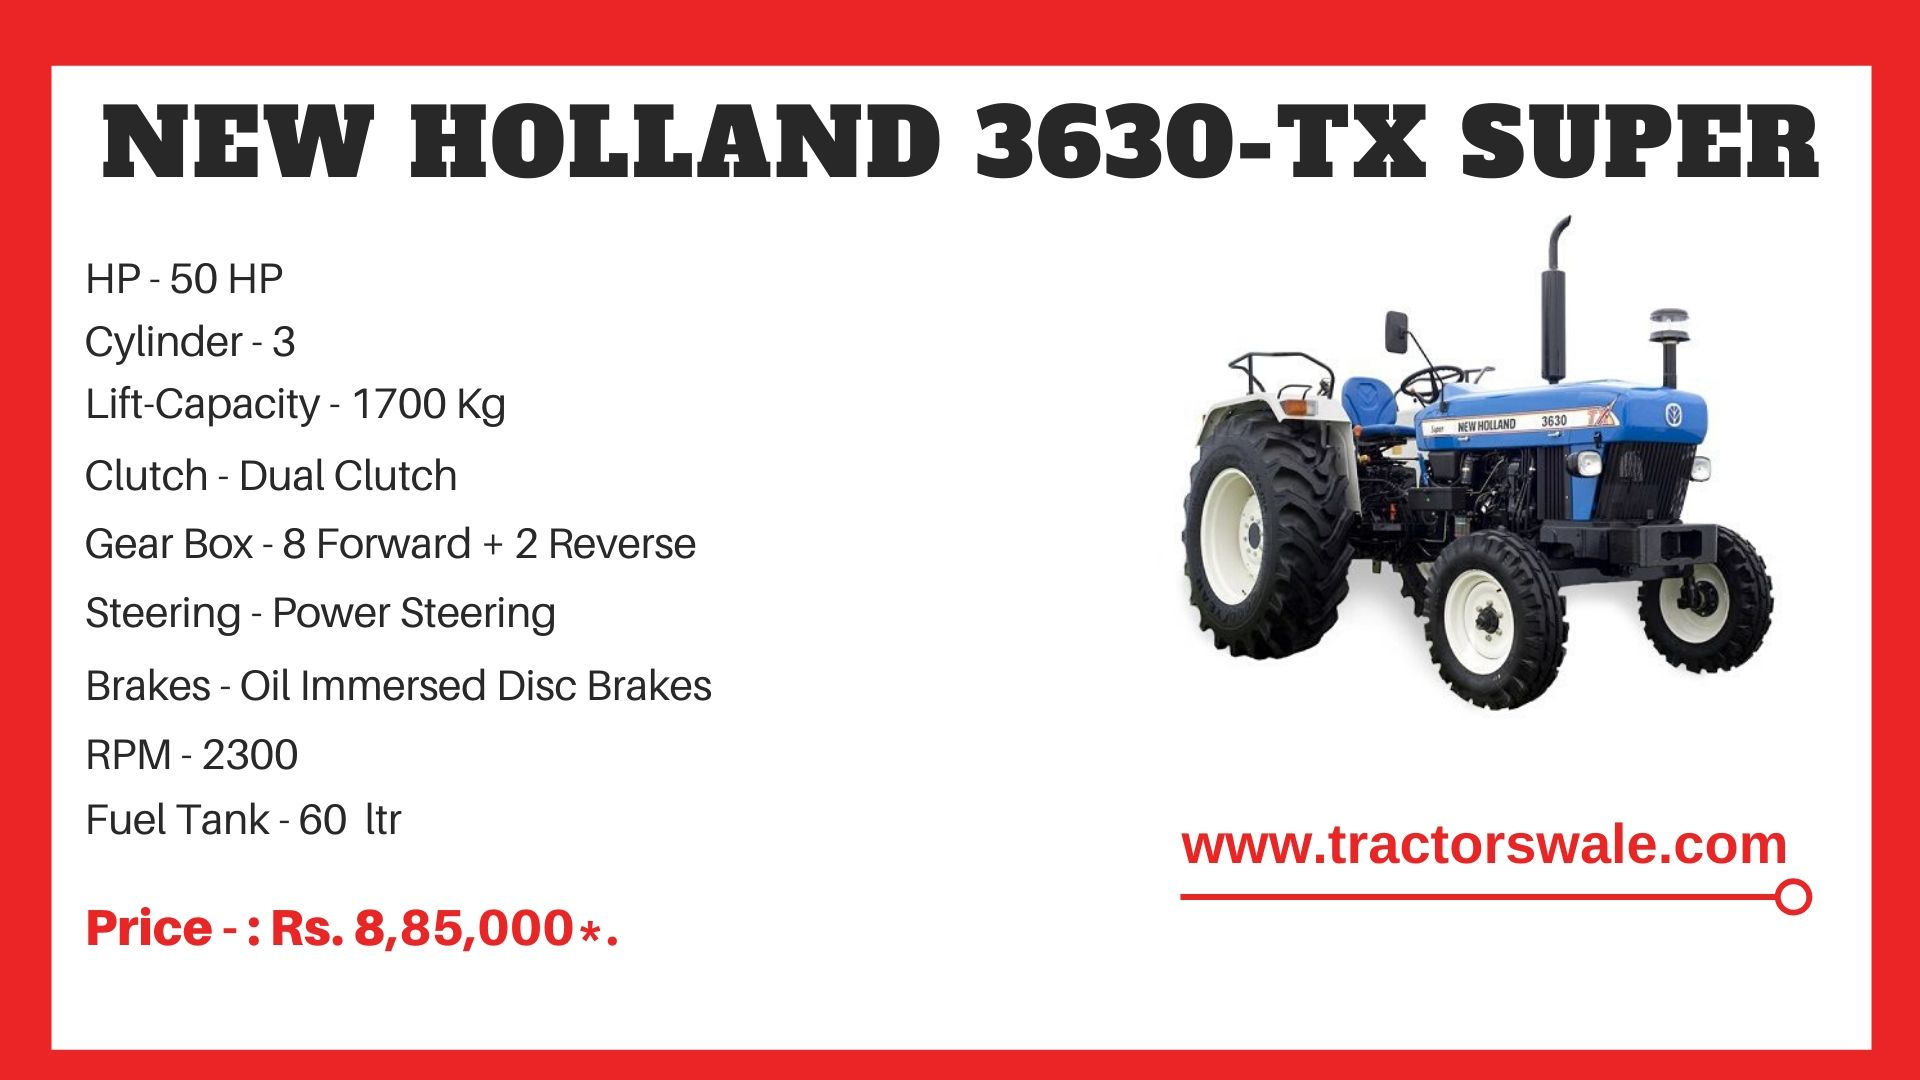 New Holland 3630 tractor specs